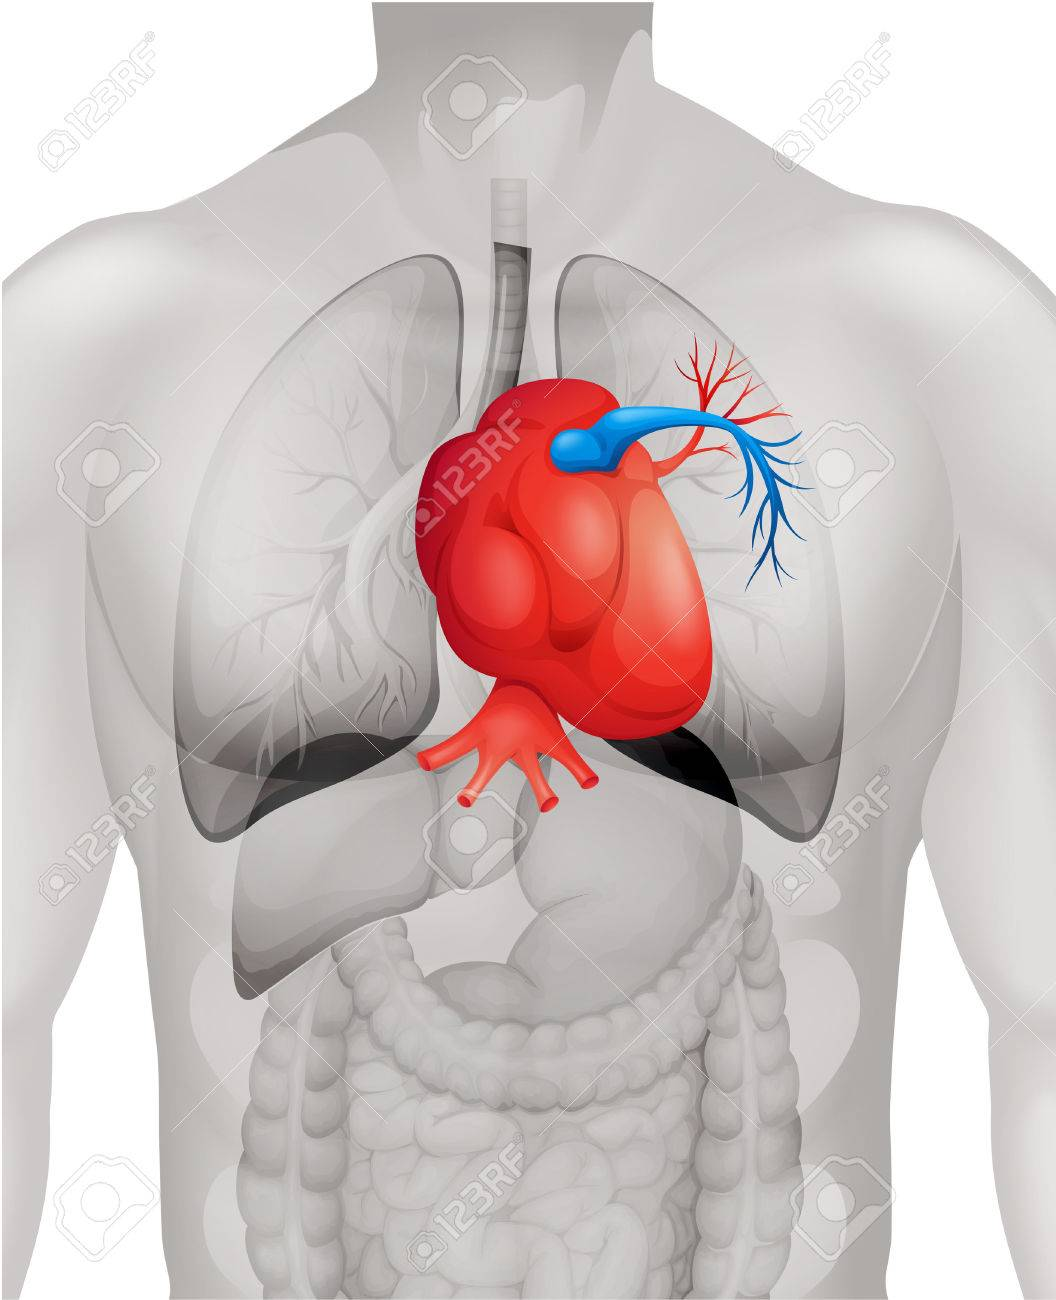 Human Heart Diagram In Detail Illustration Royalty Free Cliparts